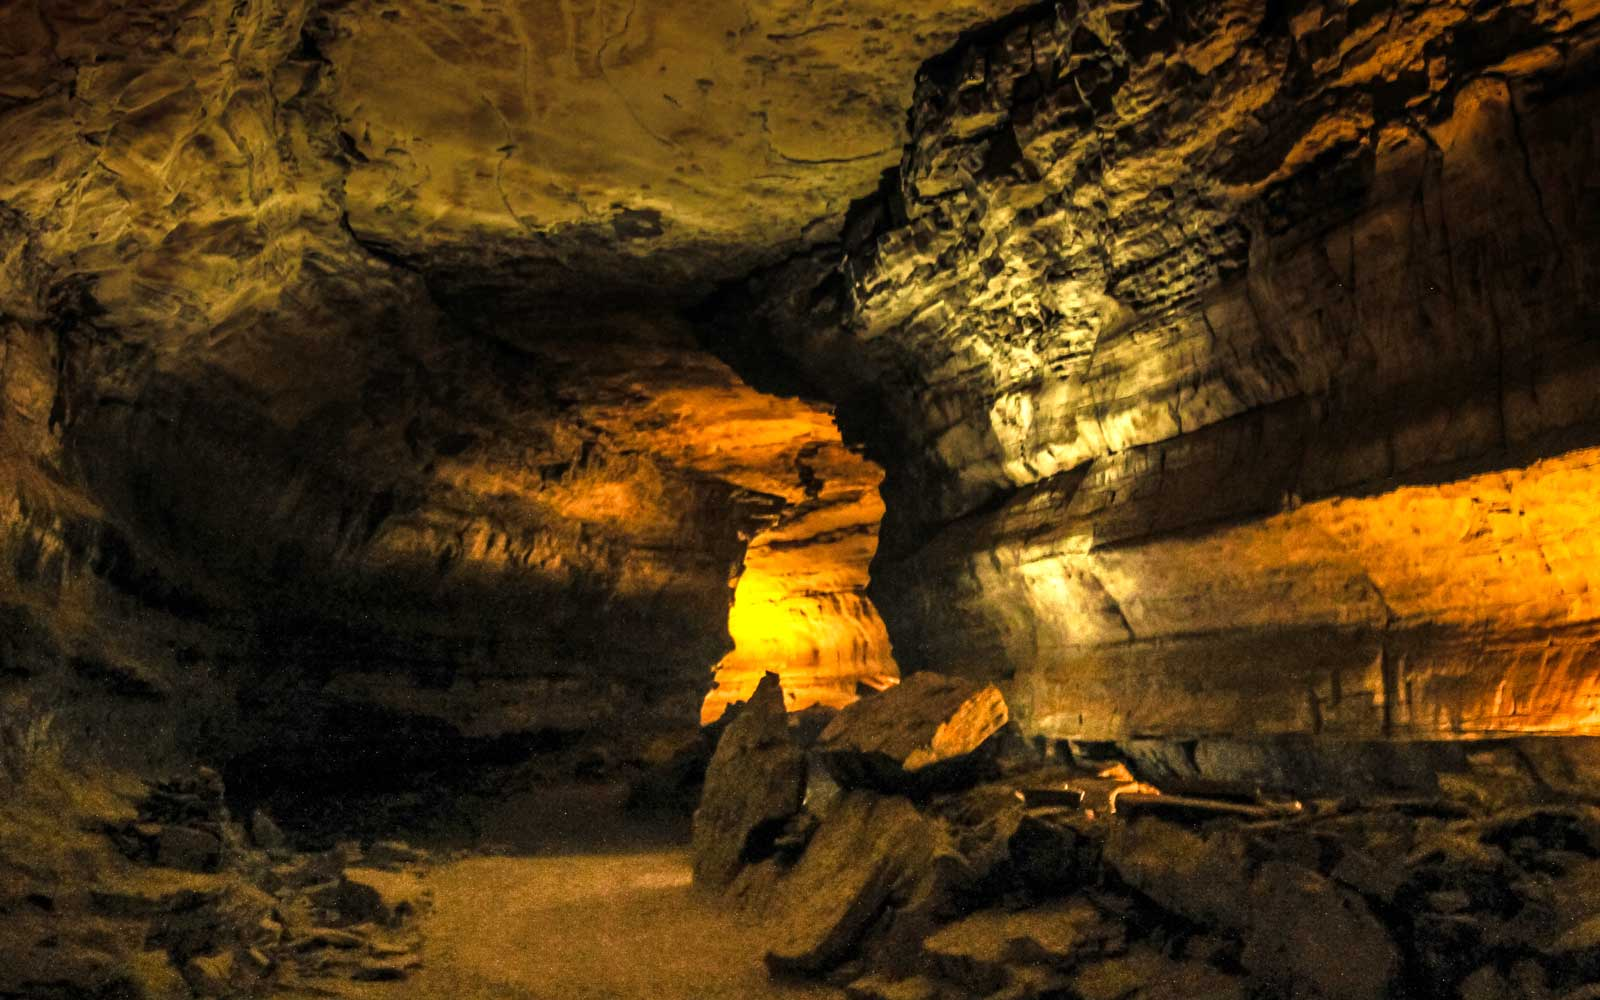 Passage within Mammoth Caves National Park